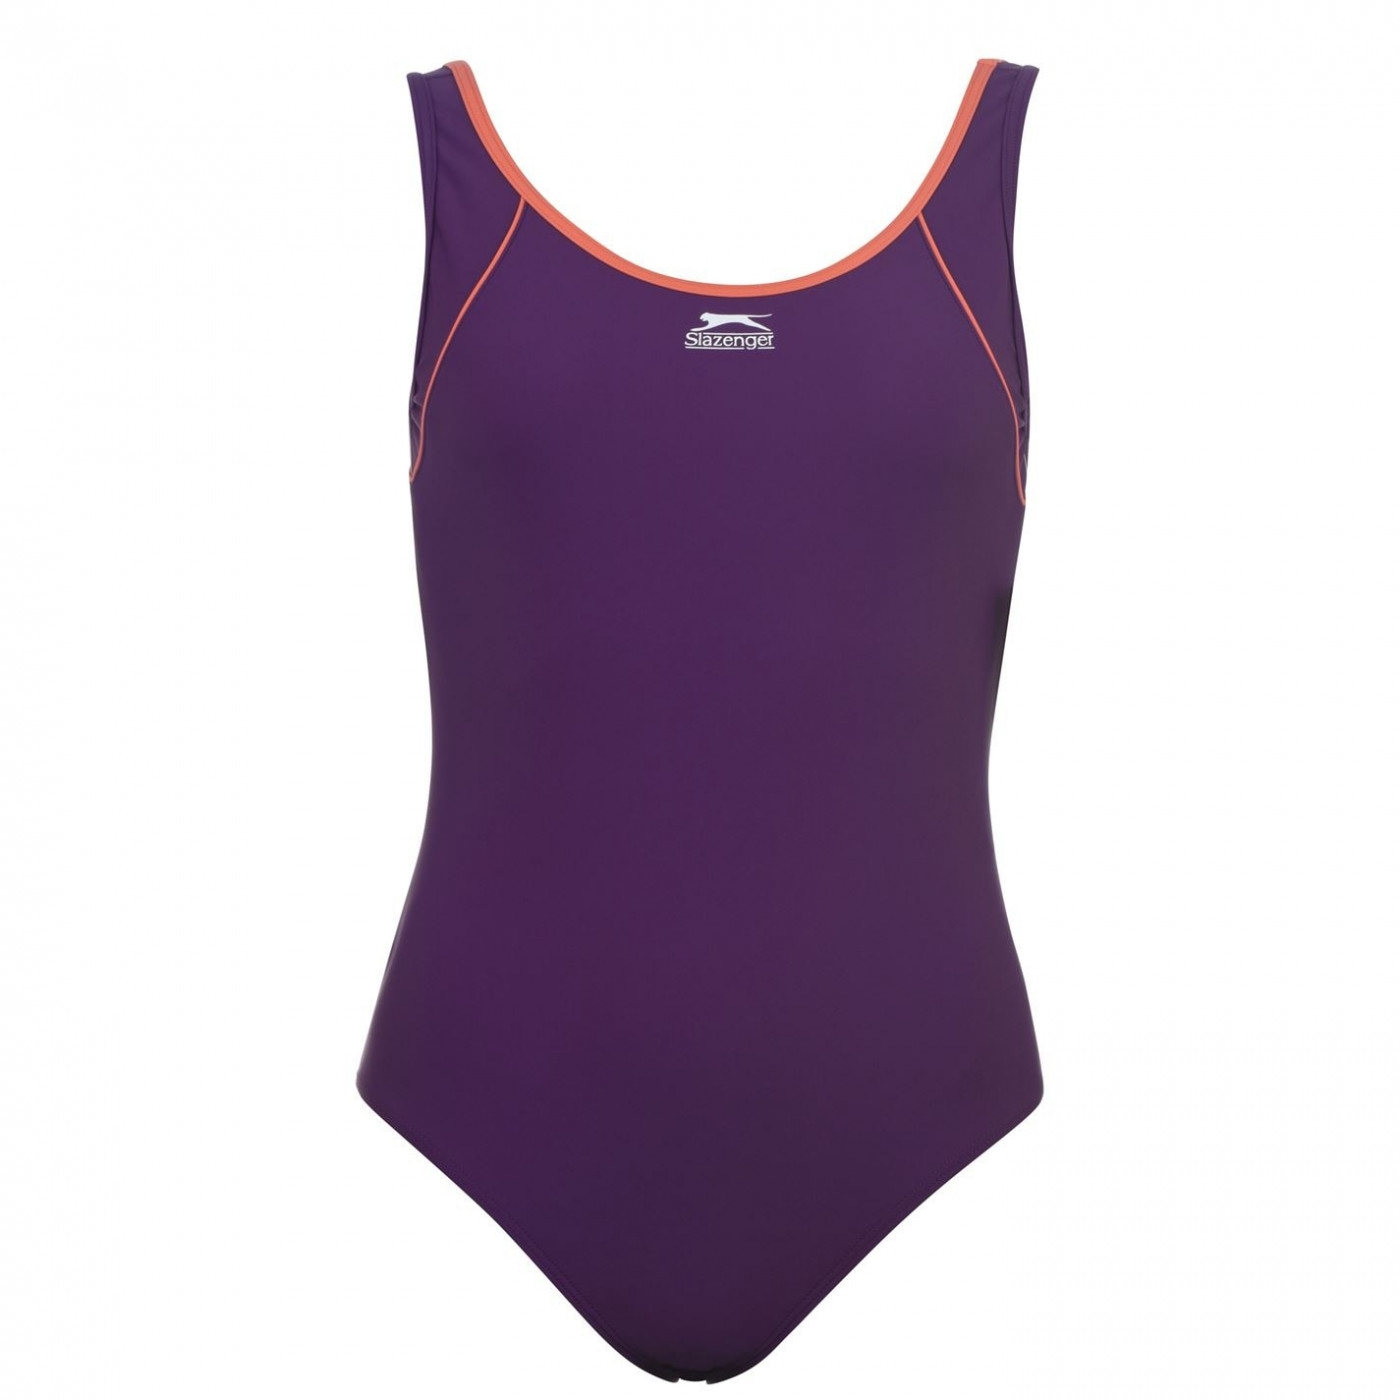 Women's swimsuit Slazenger Basic